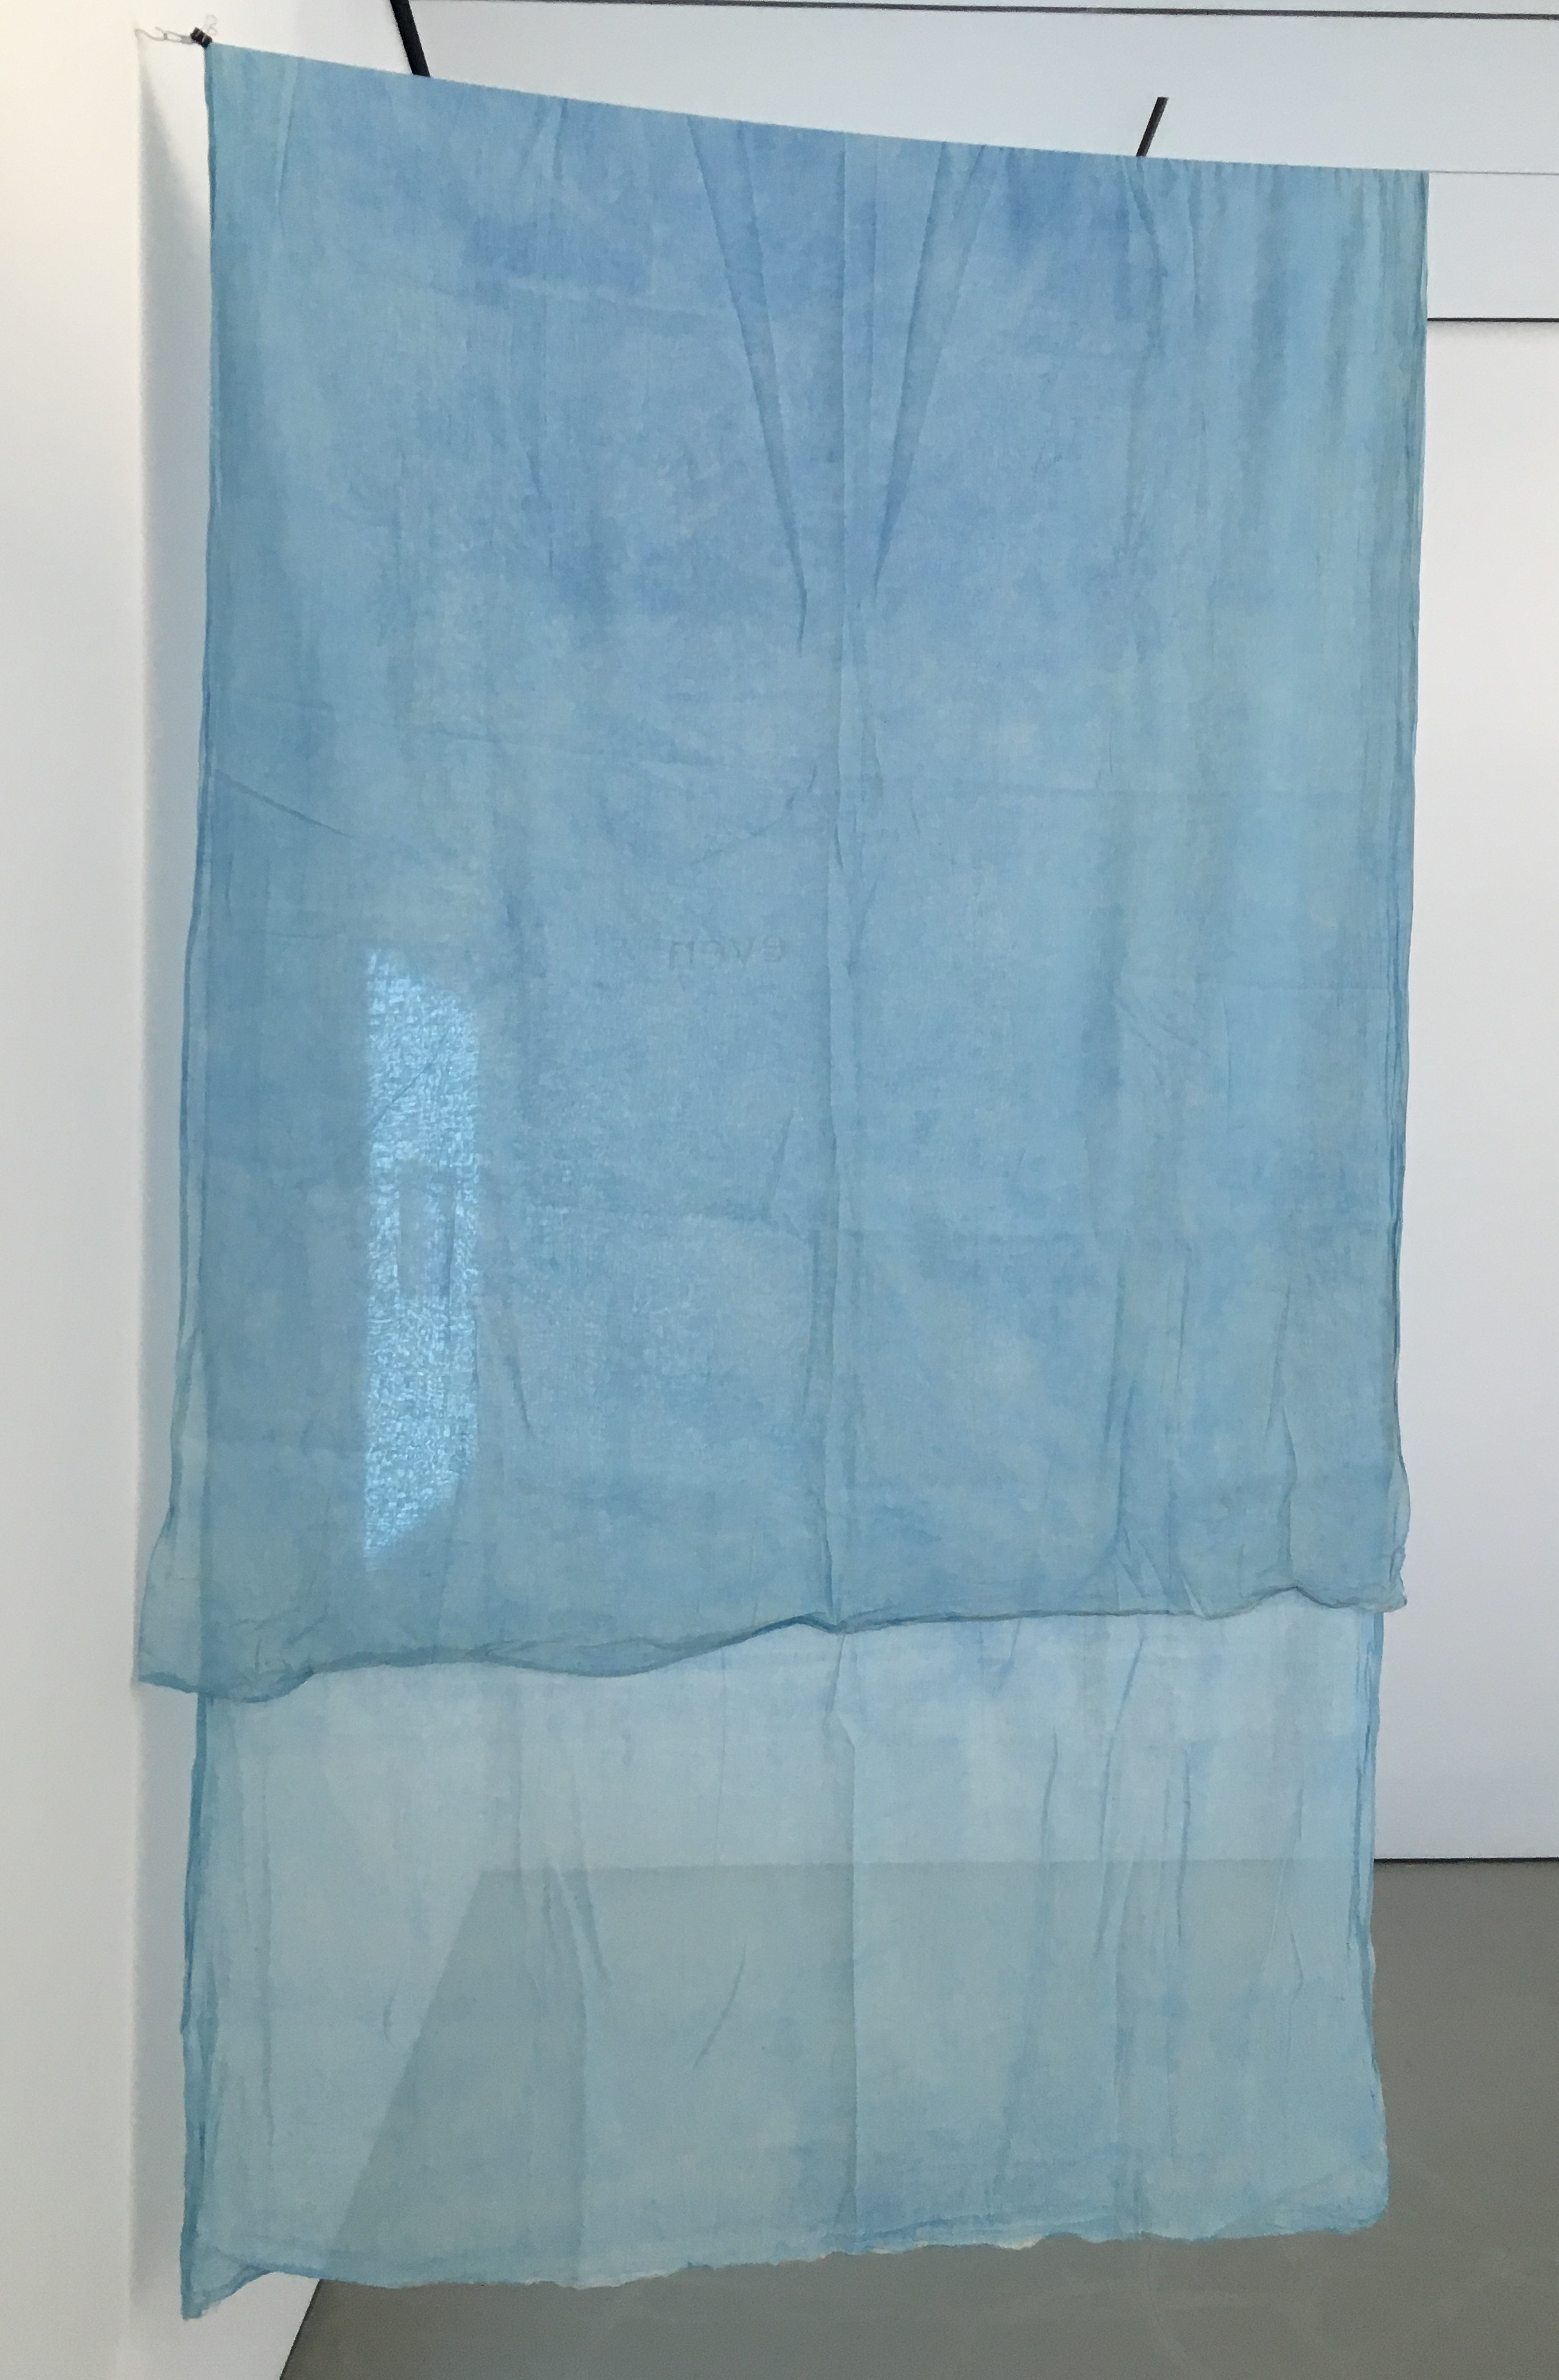 Lee Kit   We Try and Try, Even if it Lasts an Hour , 2011 4 hand painted window curtains, acrylic on fabric 157.48 x 58.66 inches 400 x 149 cm